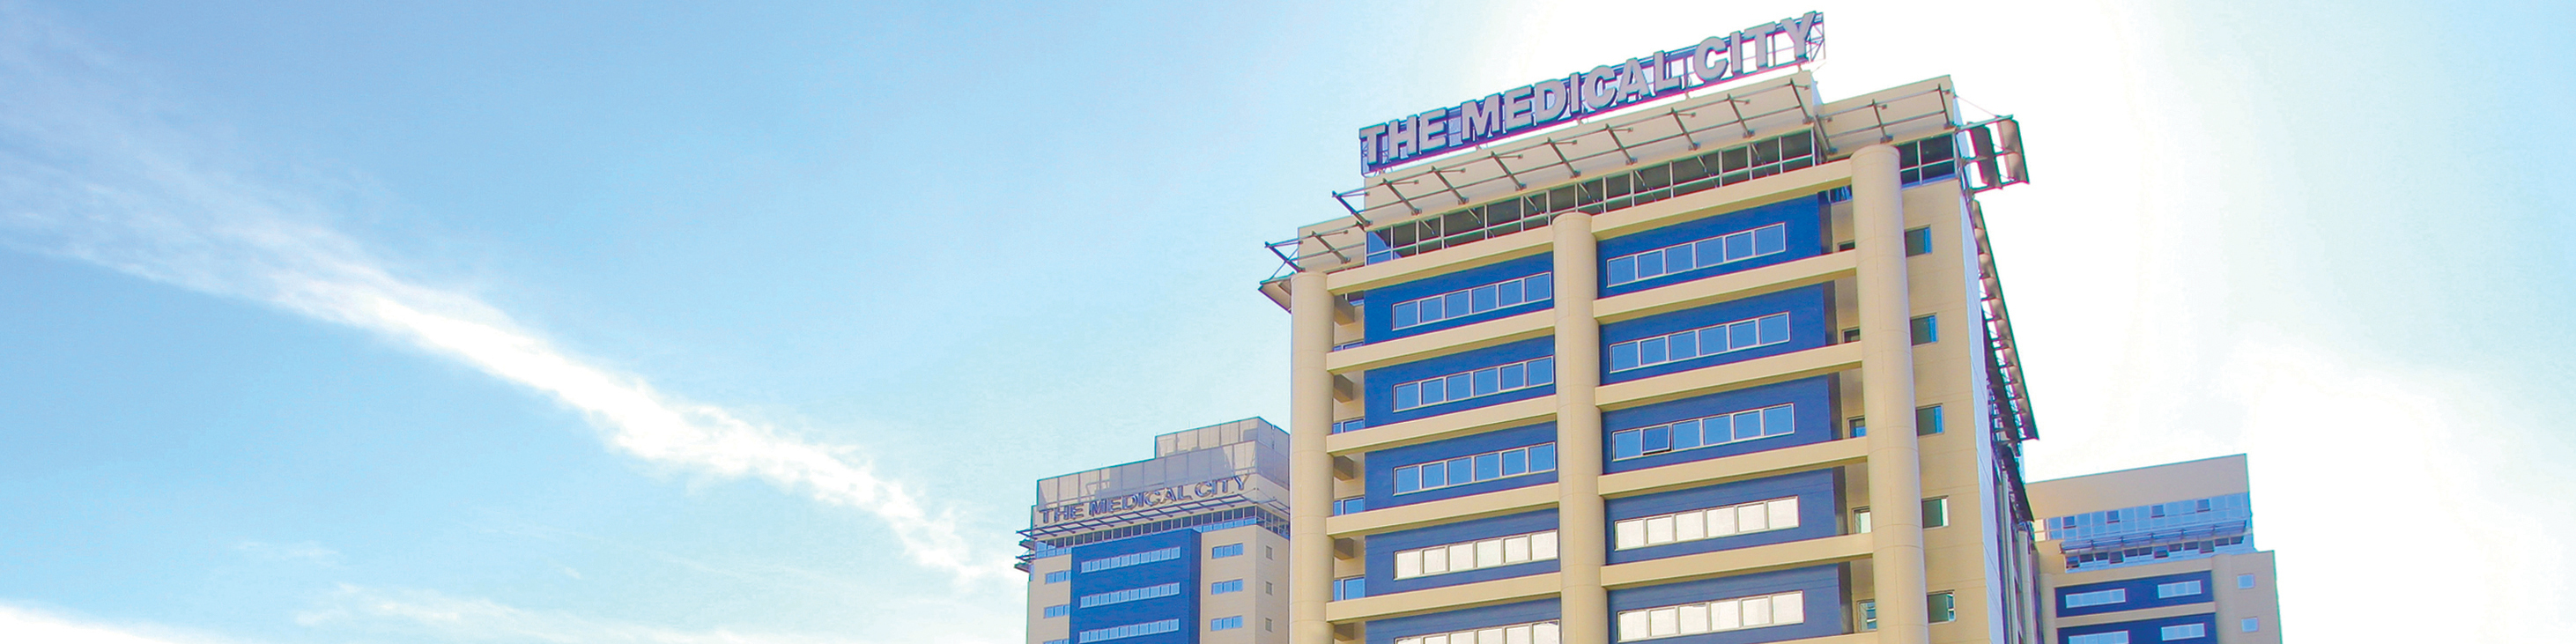 The Medical City, Philippines